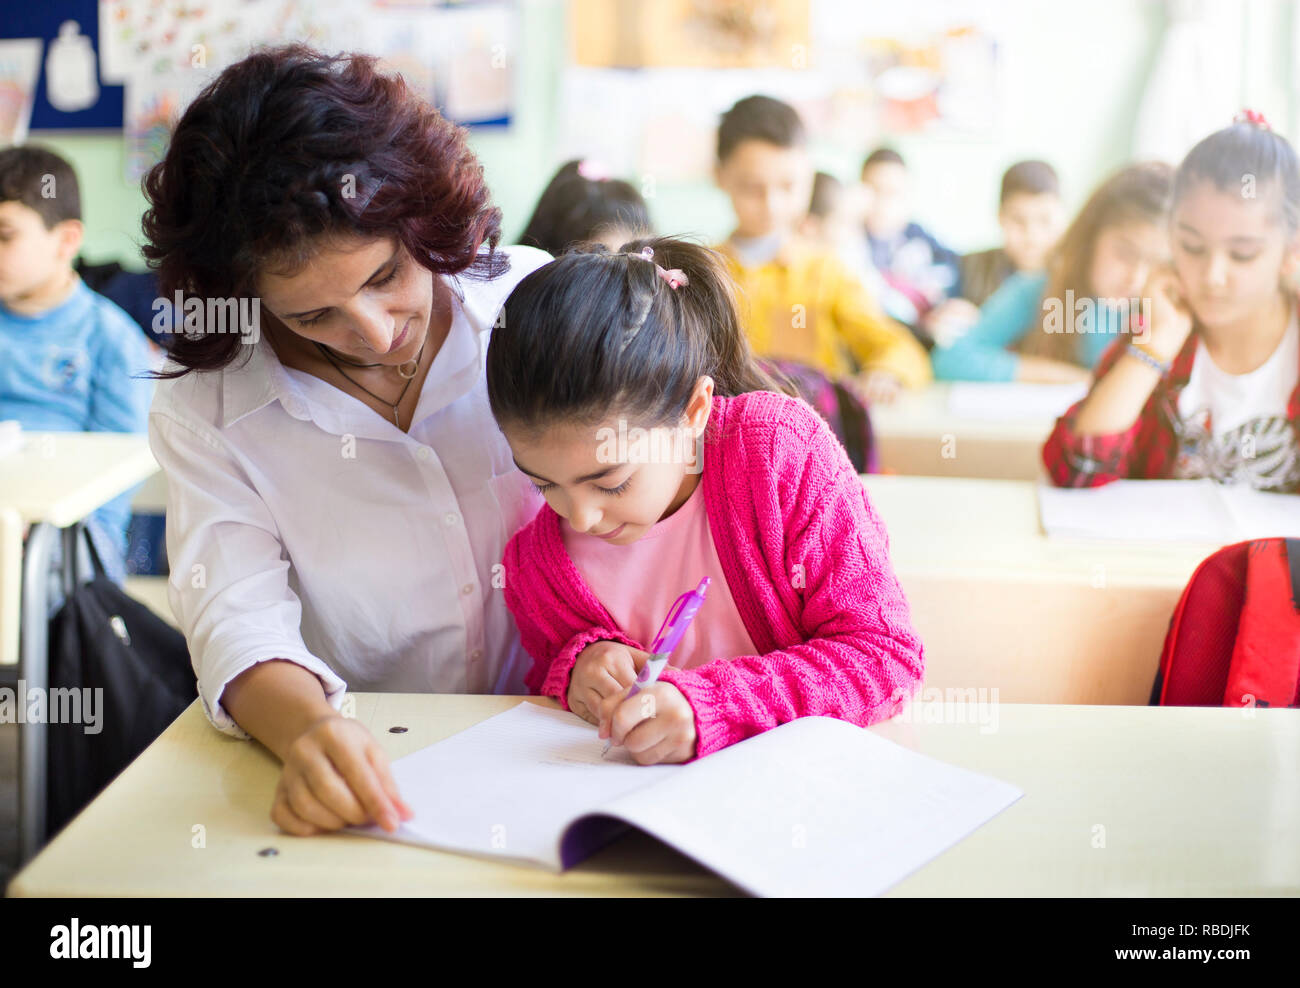 Teacher teaches to write to the girl student in the class - Stock Image